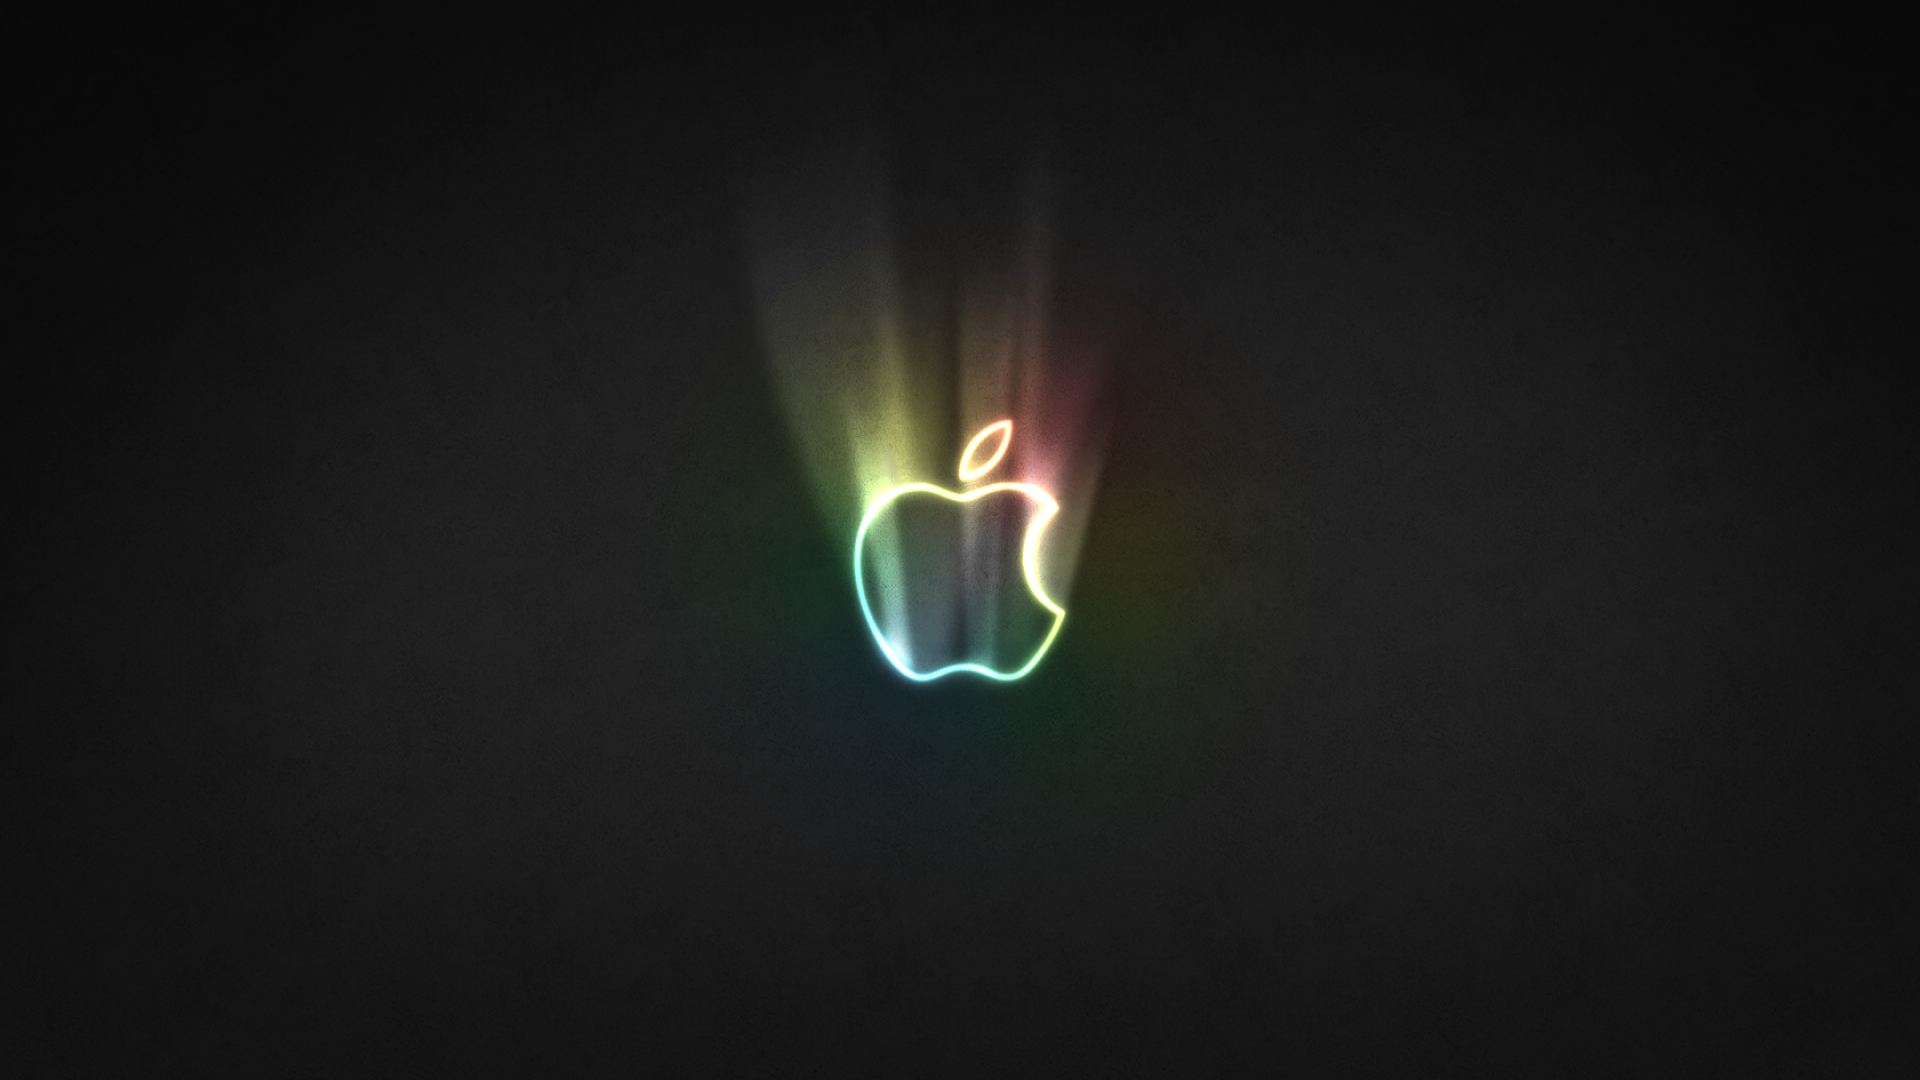 Apple glowing logo wallpaper